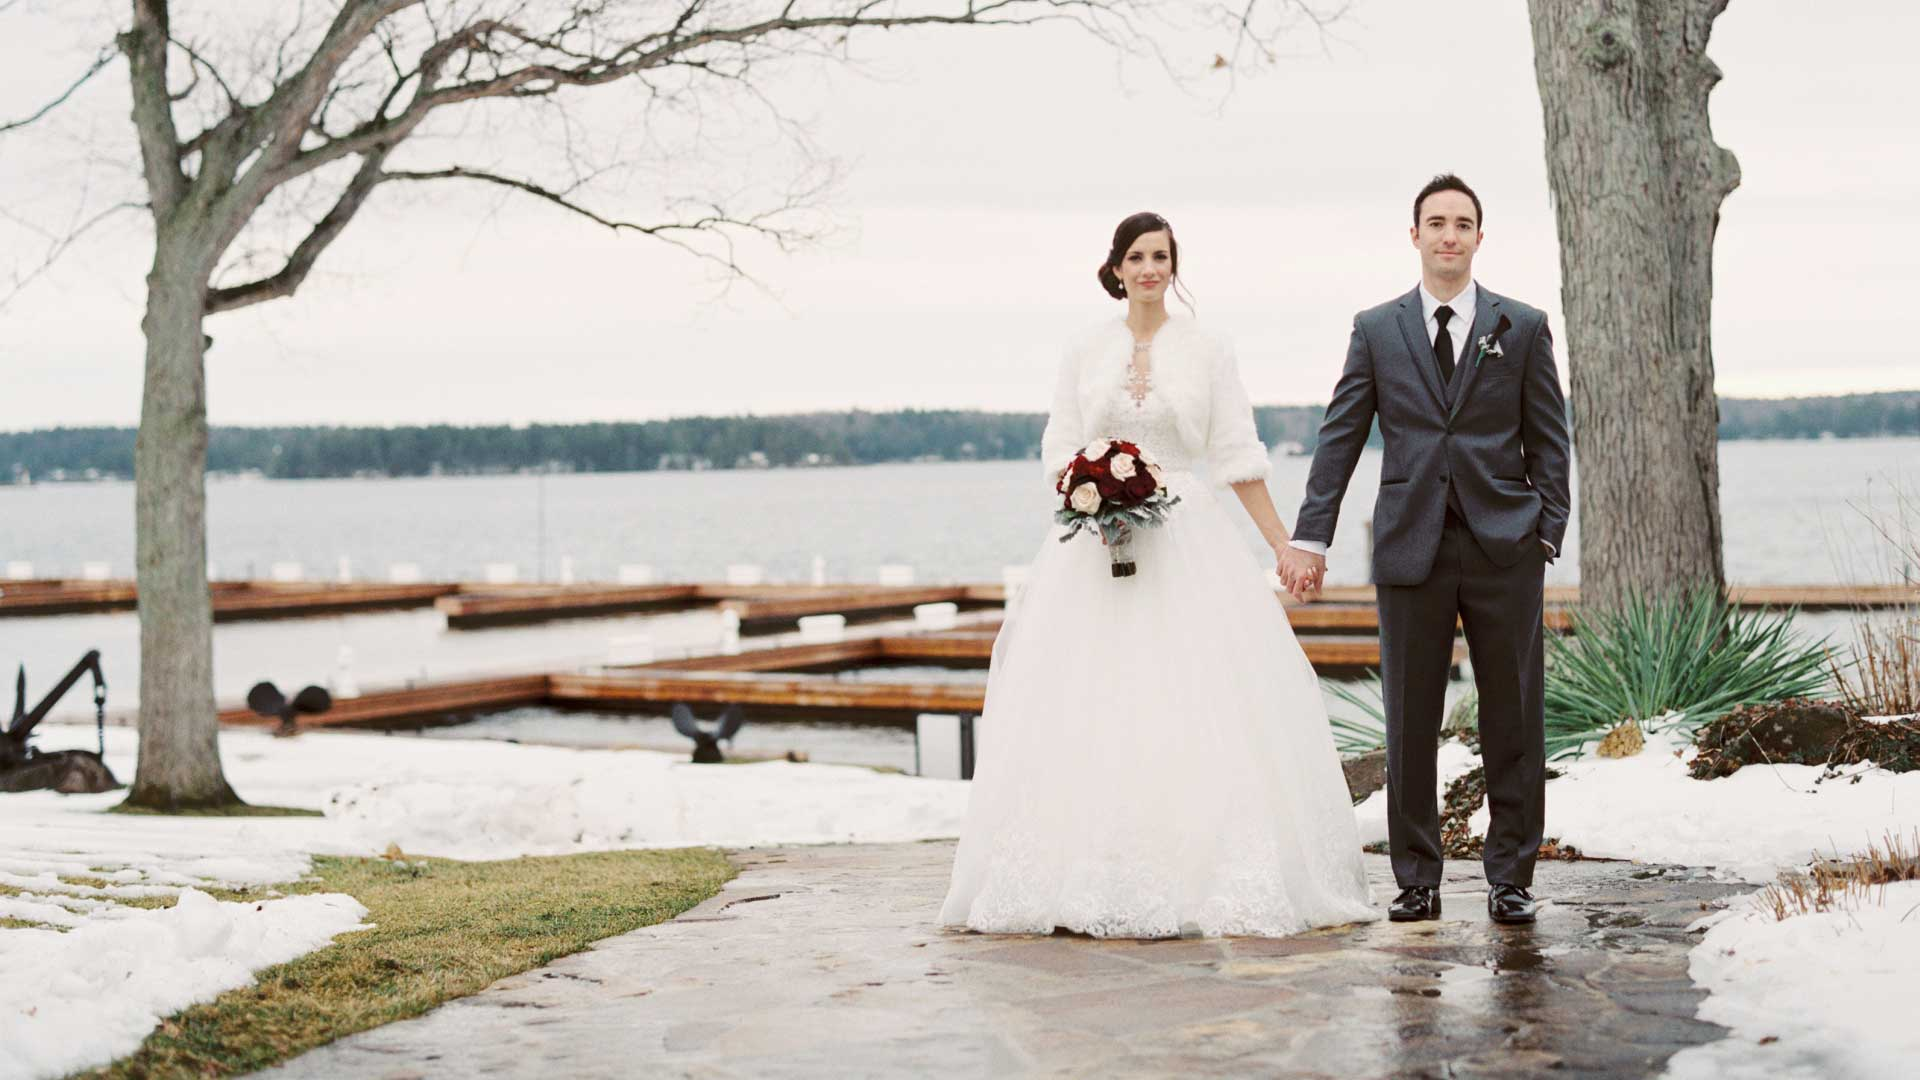 Winter wonderland wedding 1000 Islands | The Ivy Lea Club | AMBphoto